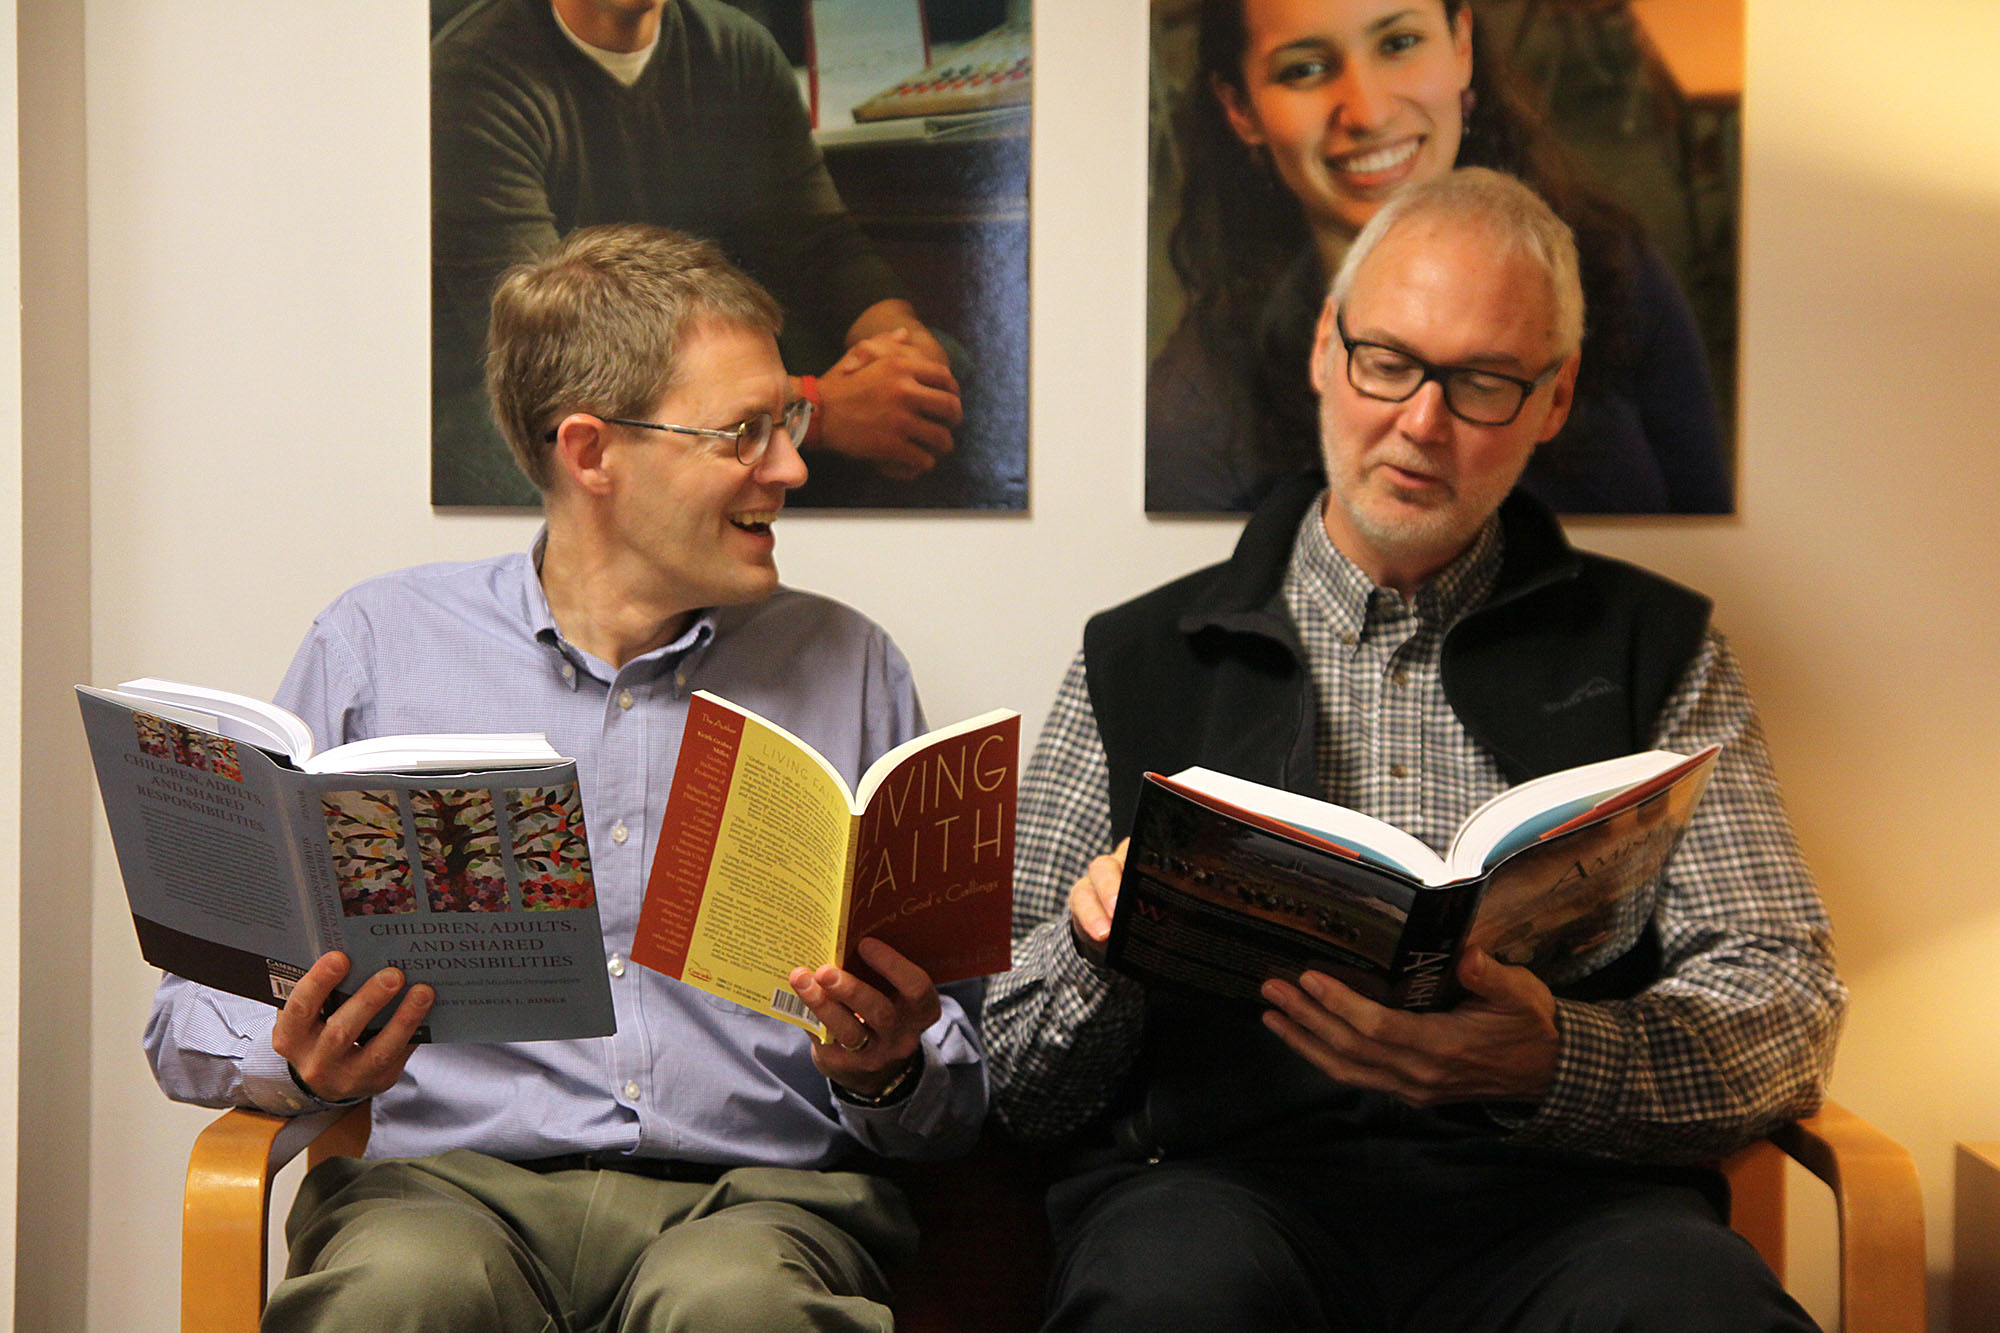 Steven Nolt and Keith Graber Miller read the books they have written and published